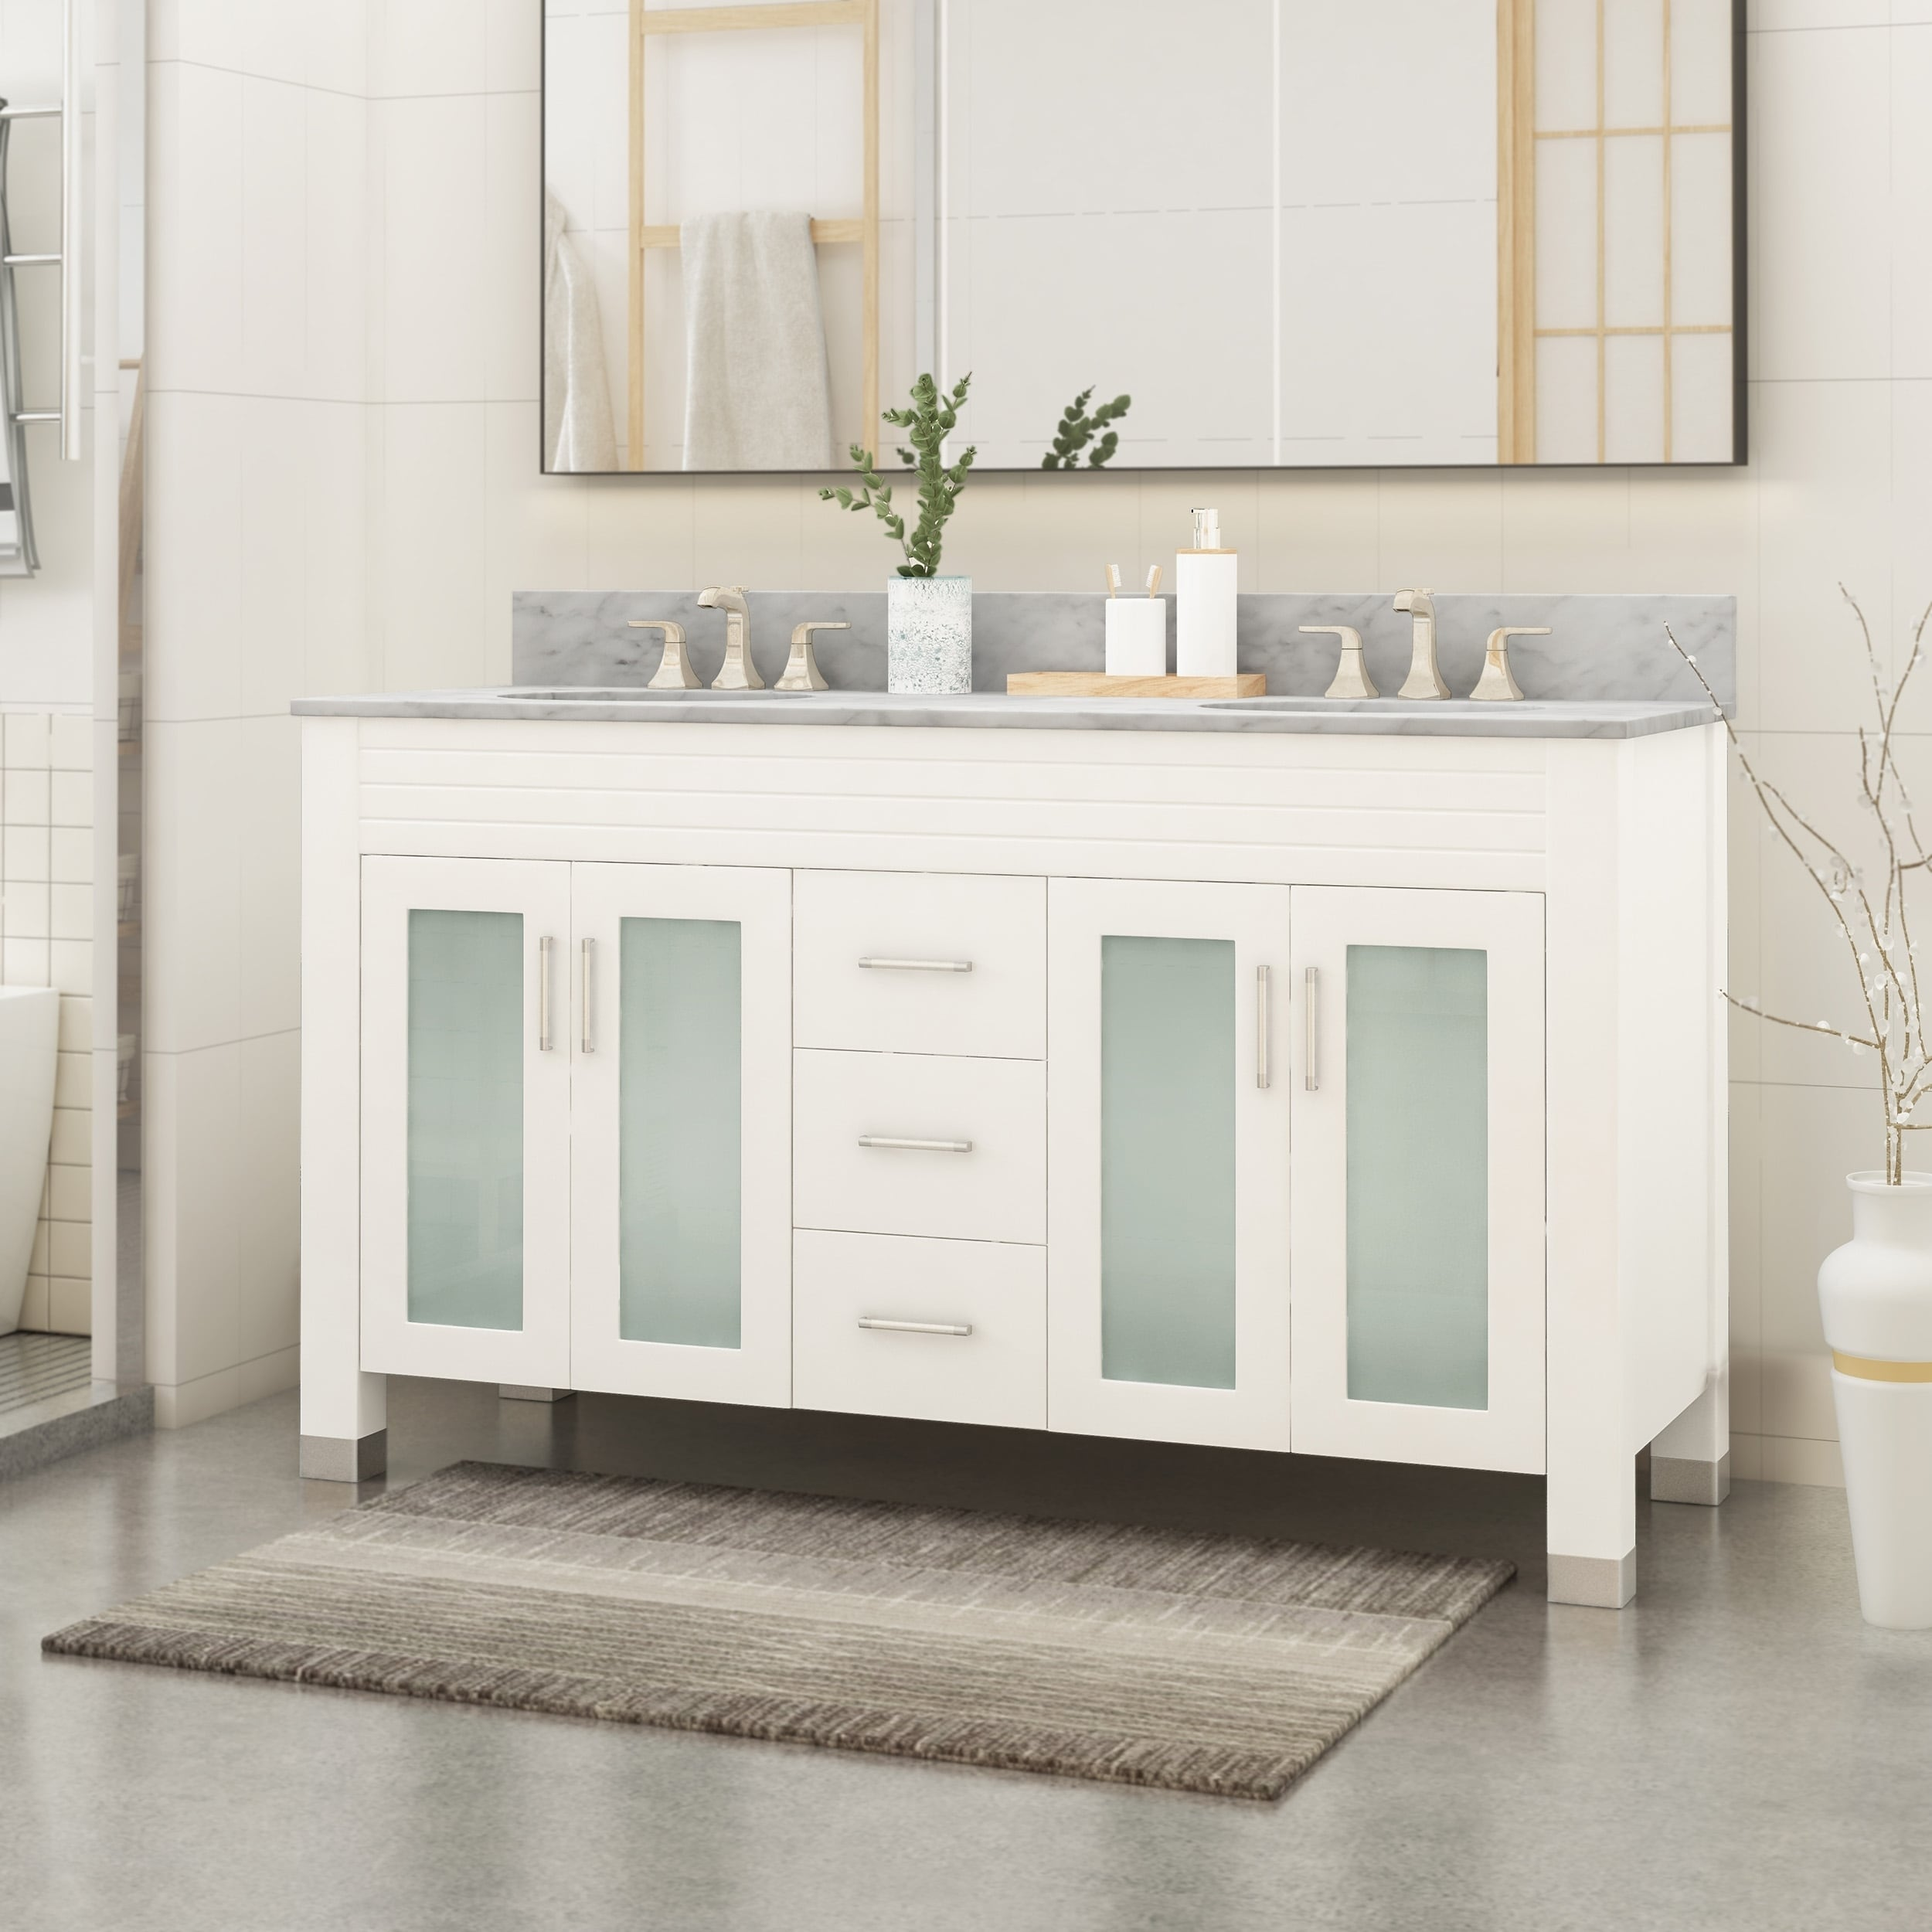 Shop Holdame 60 Wood Bathroom Vanity Counter Top Not Included By Christopher Knight Home Overstock 26063321